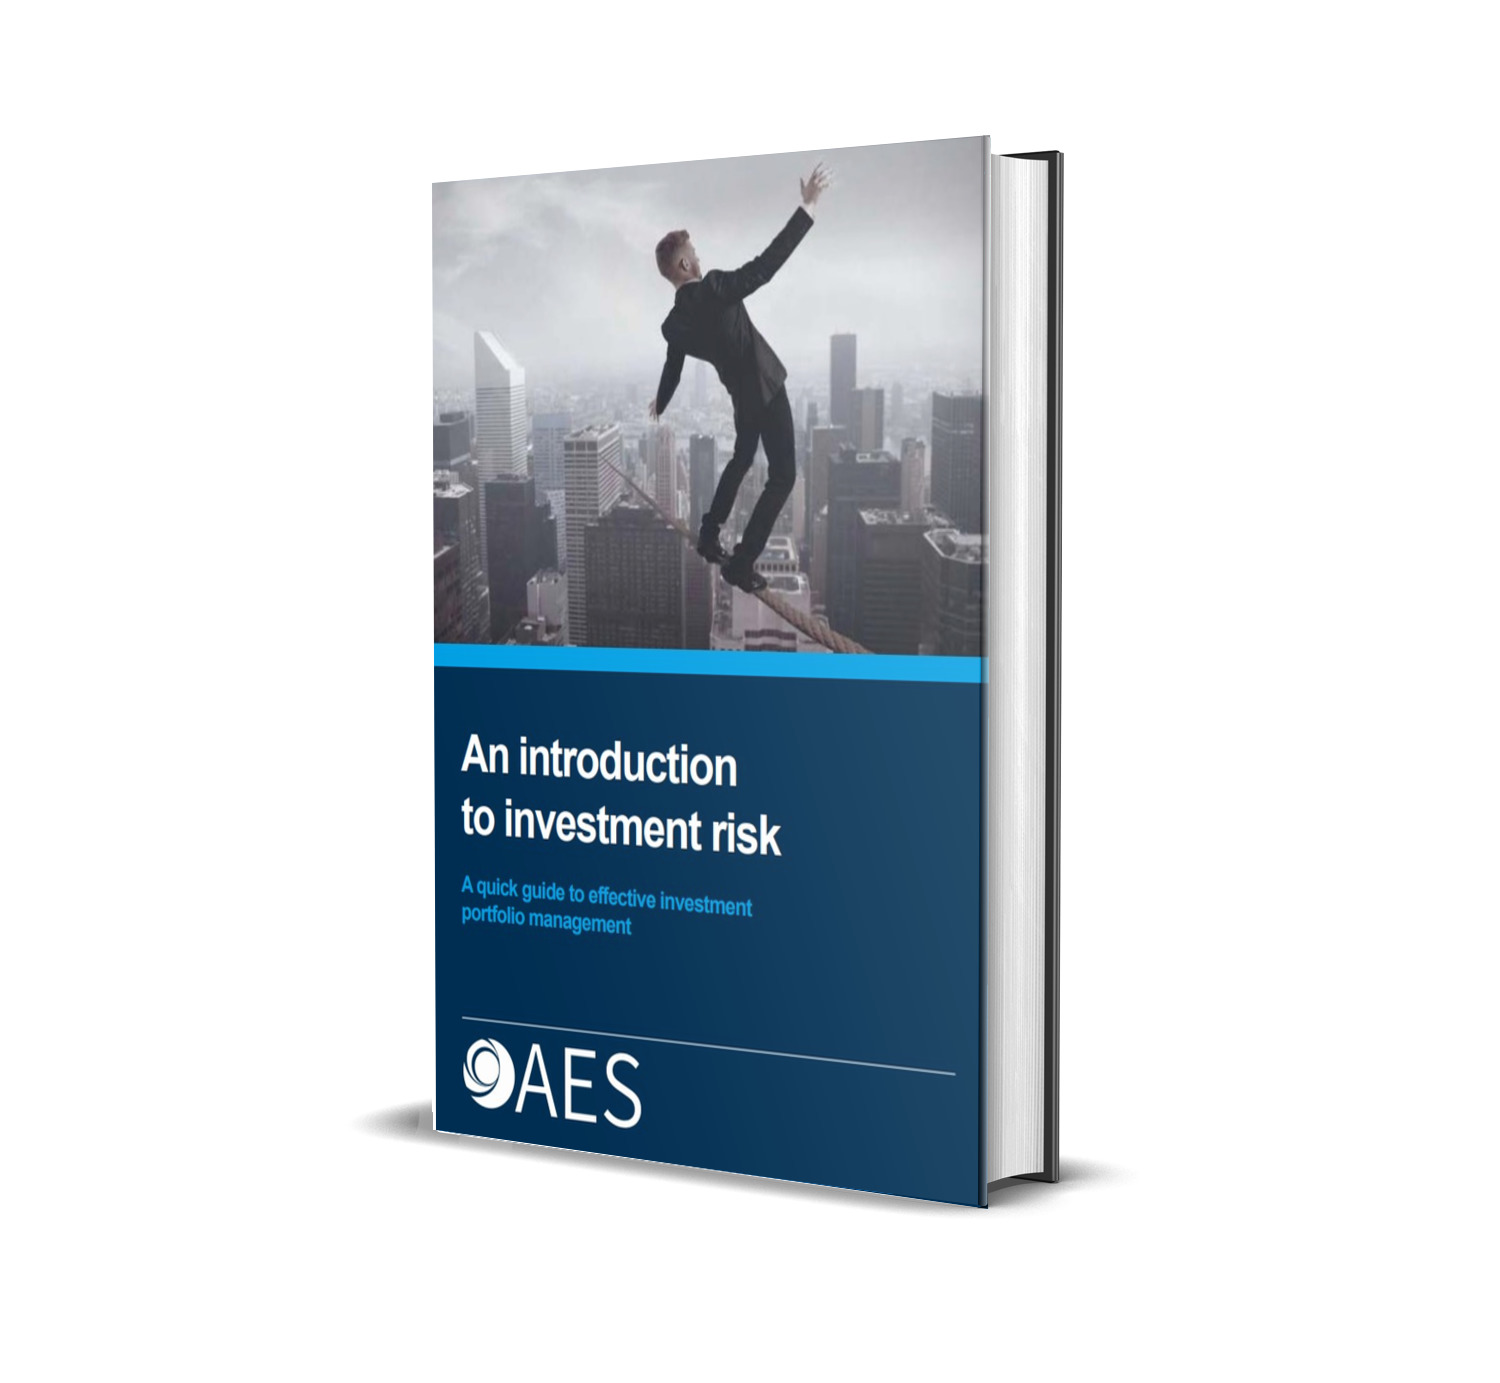 an introduction to investment risk 2020